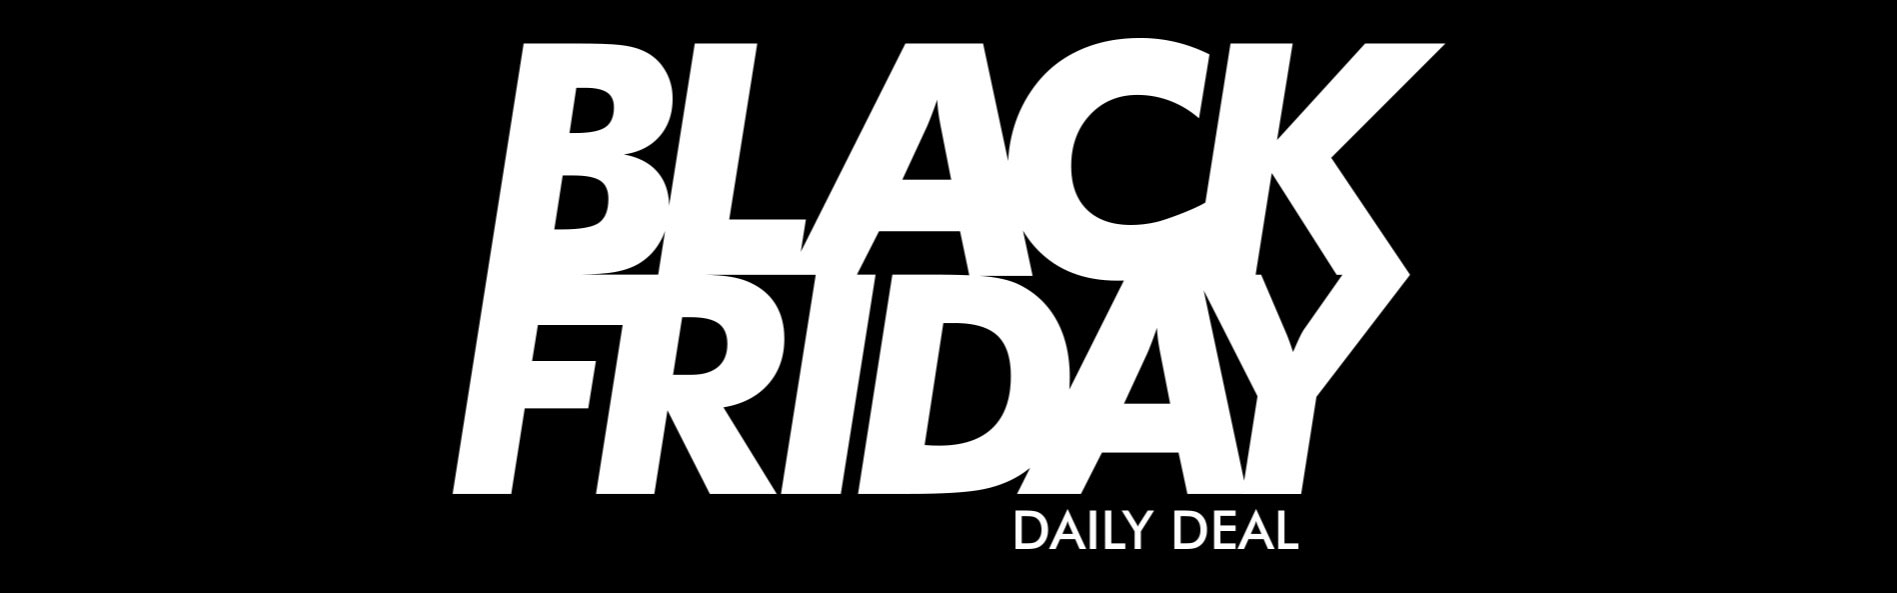 Black Friday Daily Deal